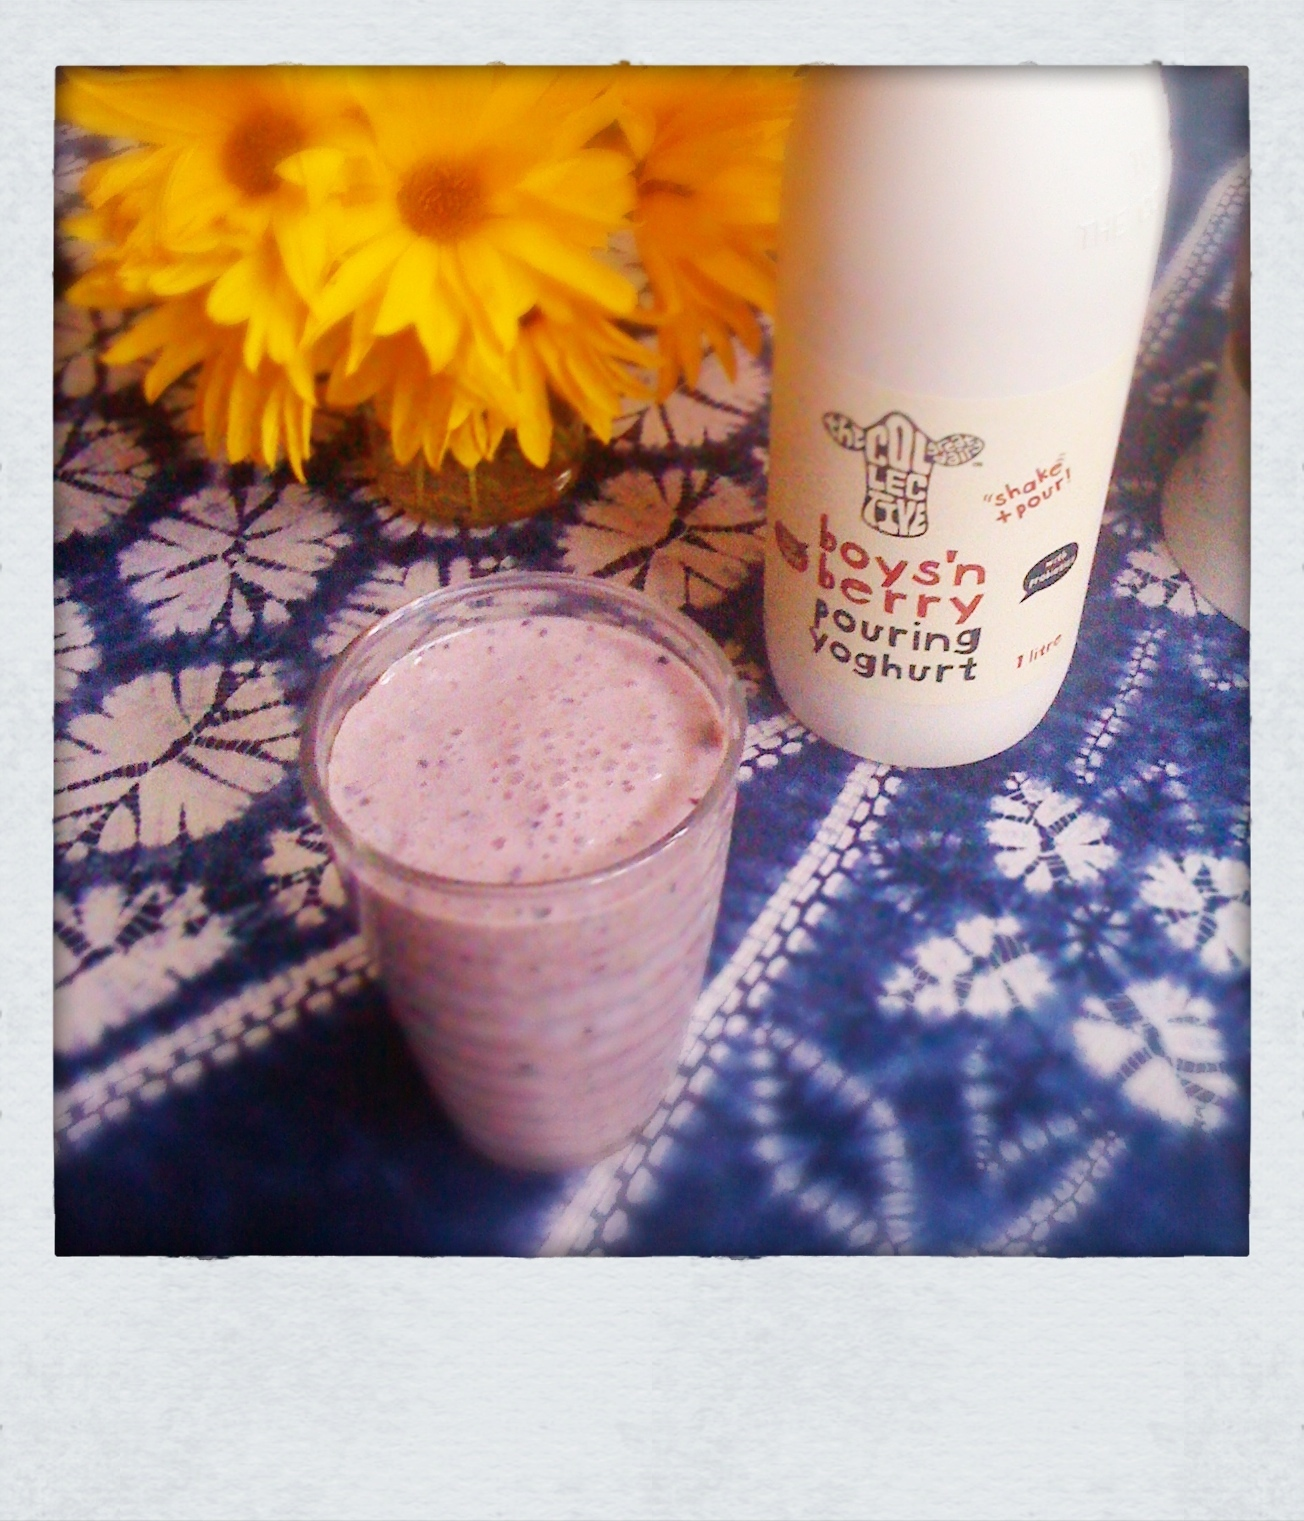 Breakfast smoothie with berry yogurt, banana and Weet-Bix